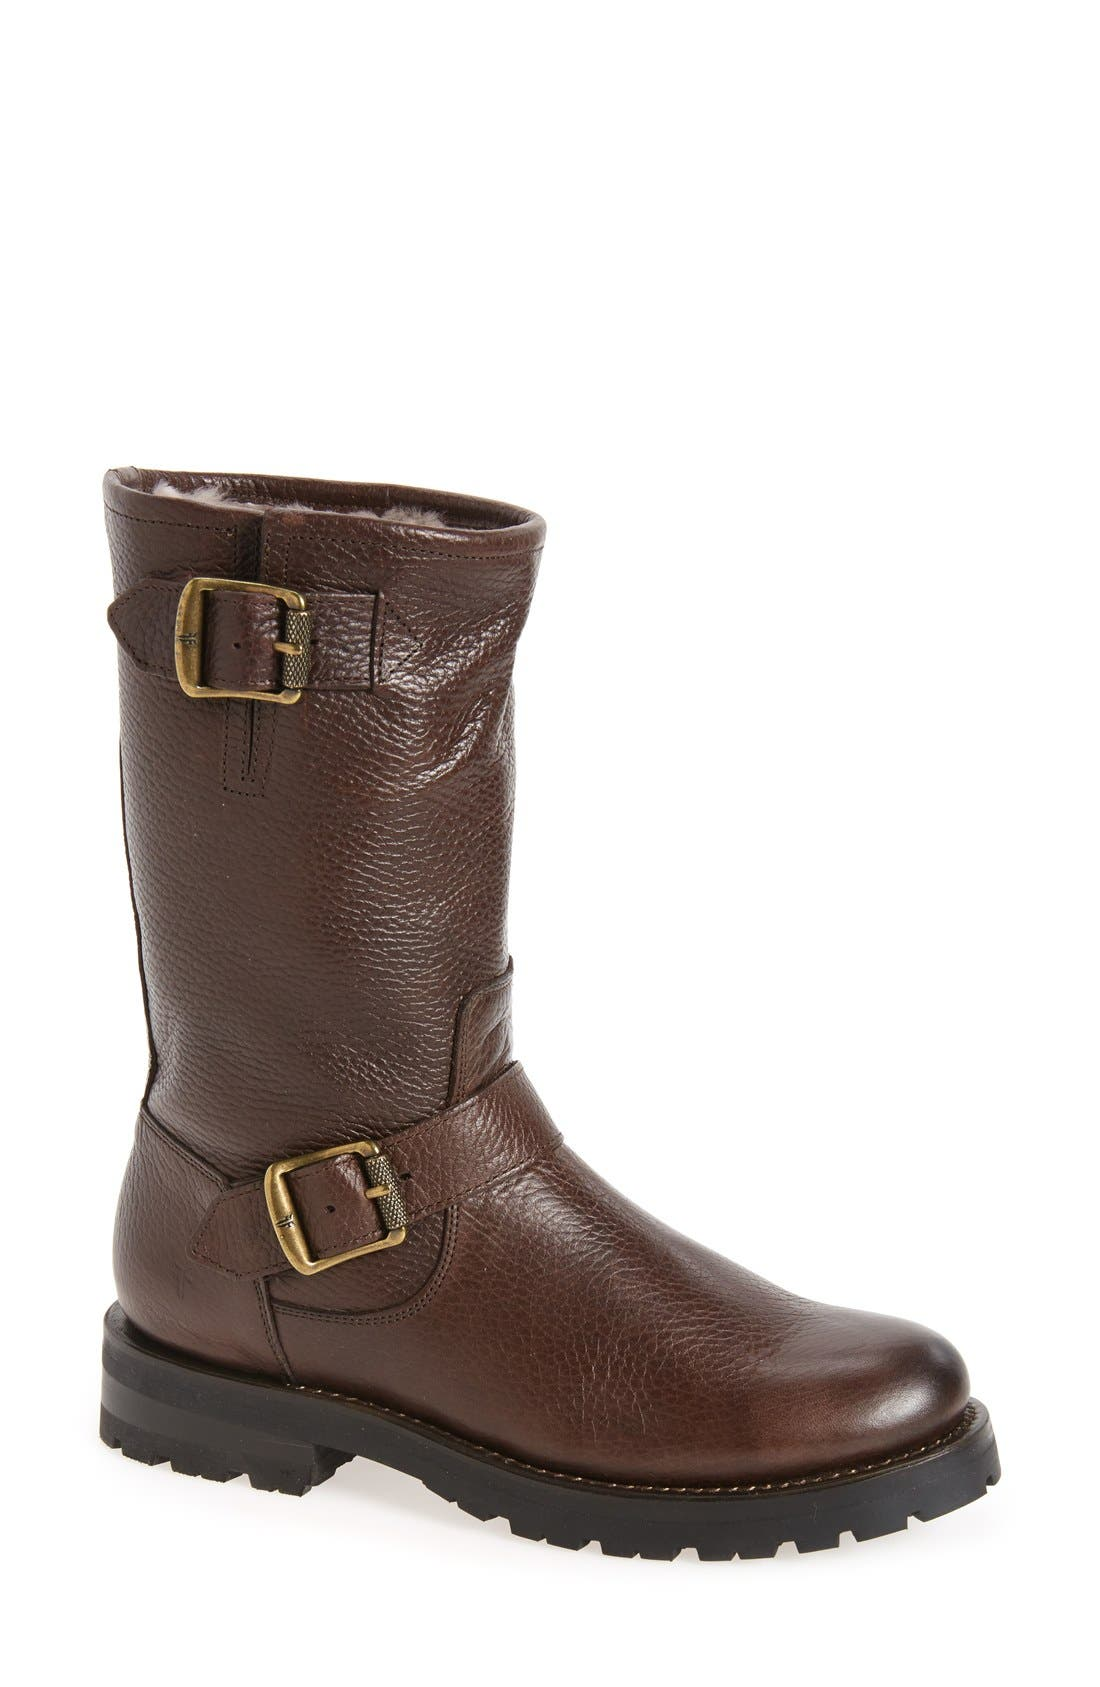 Main Image - Frye Natalie Buckle Strap Engineer Genuine Shearling Lined Boot  (Women)